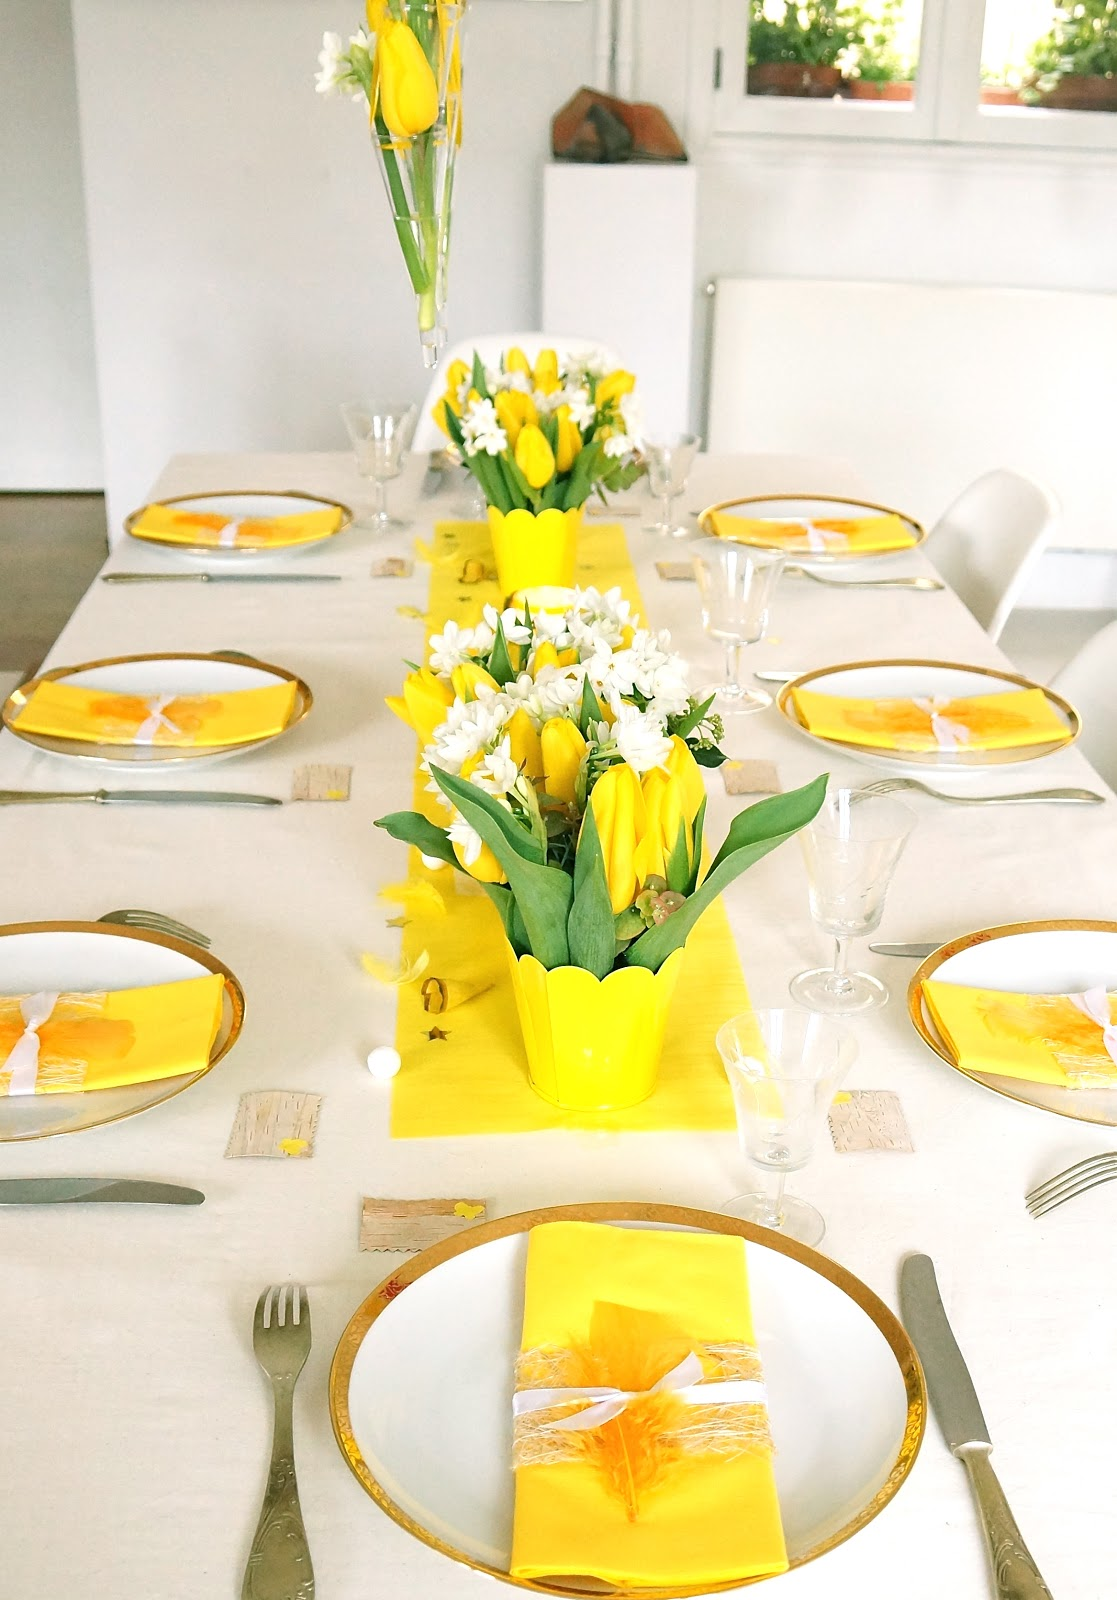 Ma boutique d co table d coration de table jaune - Decoration table printemps ...